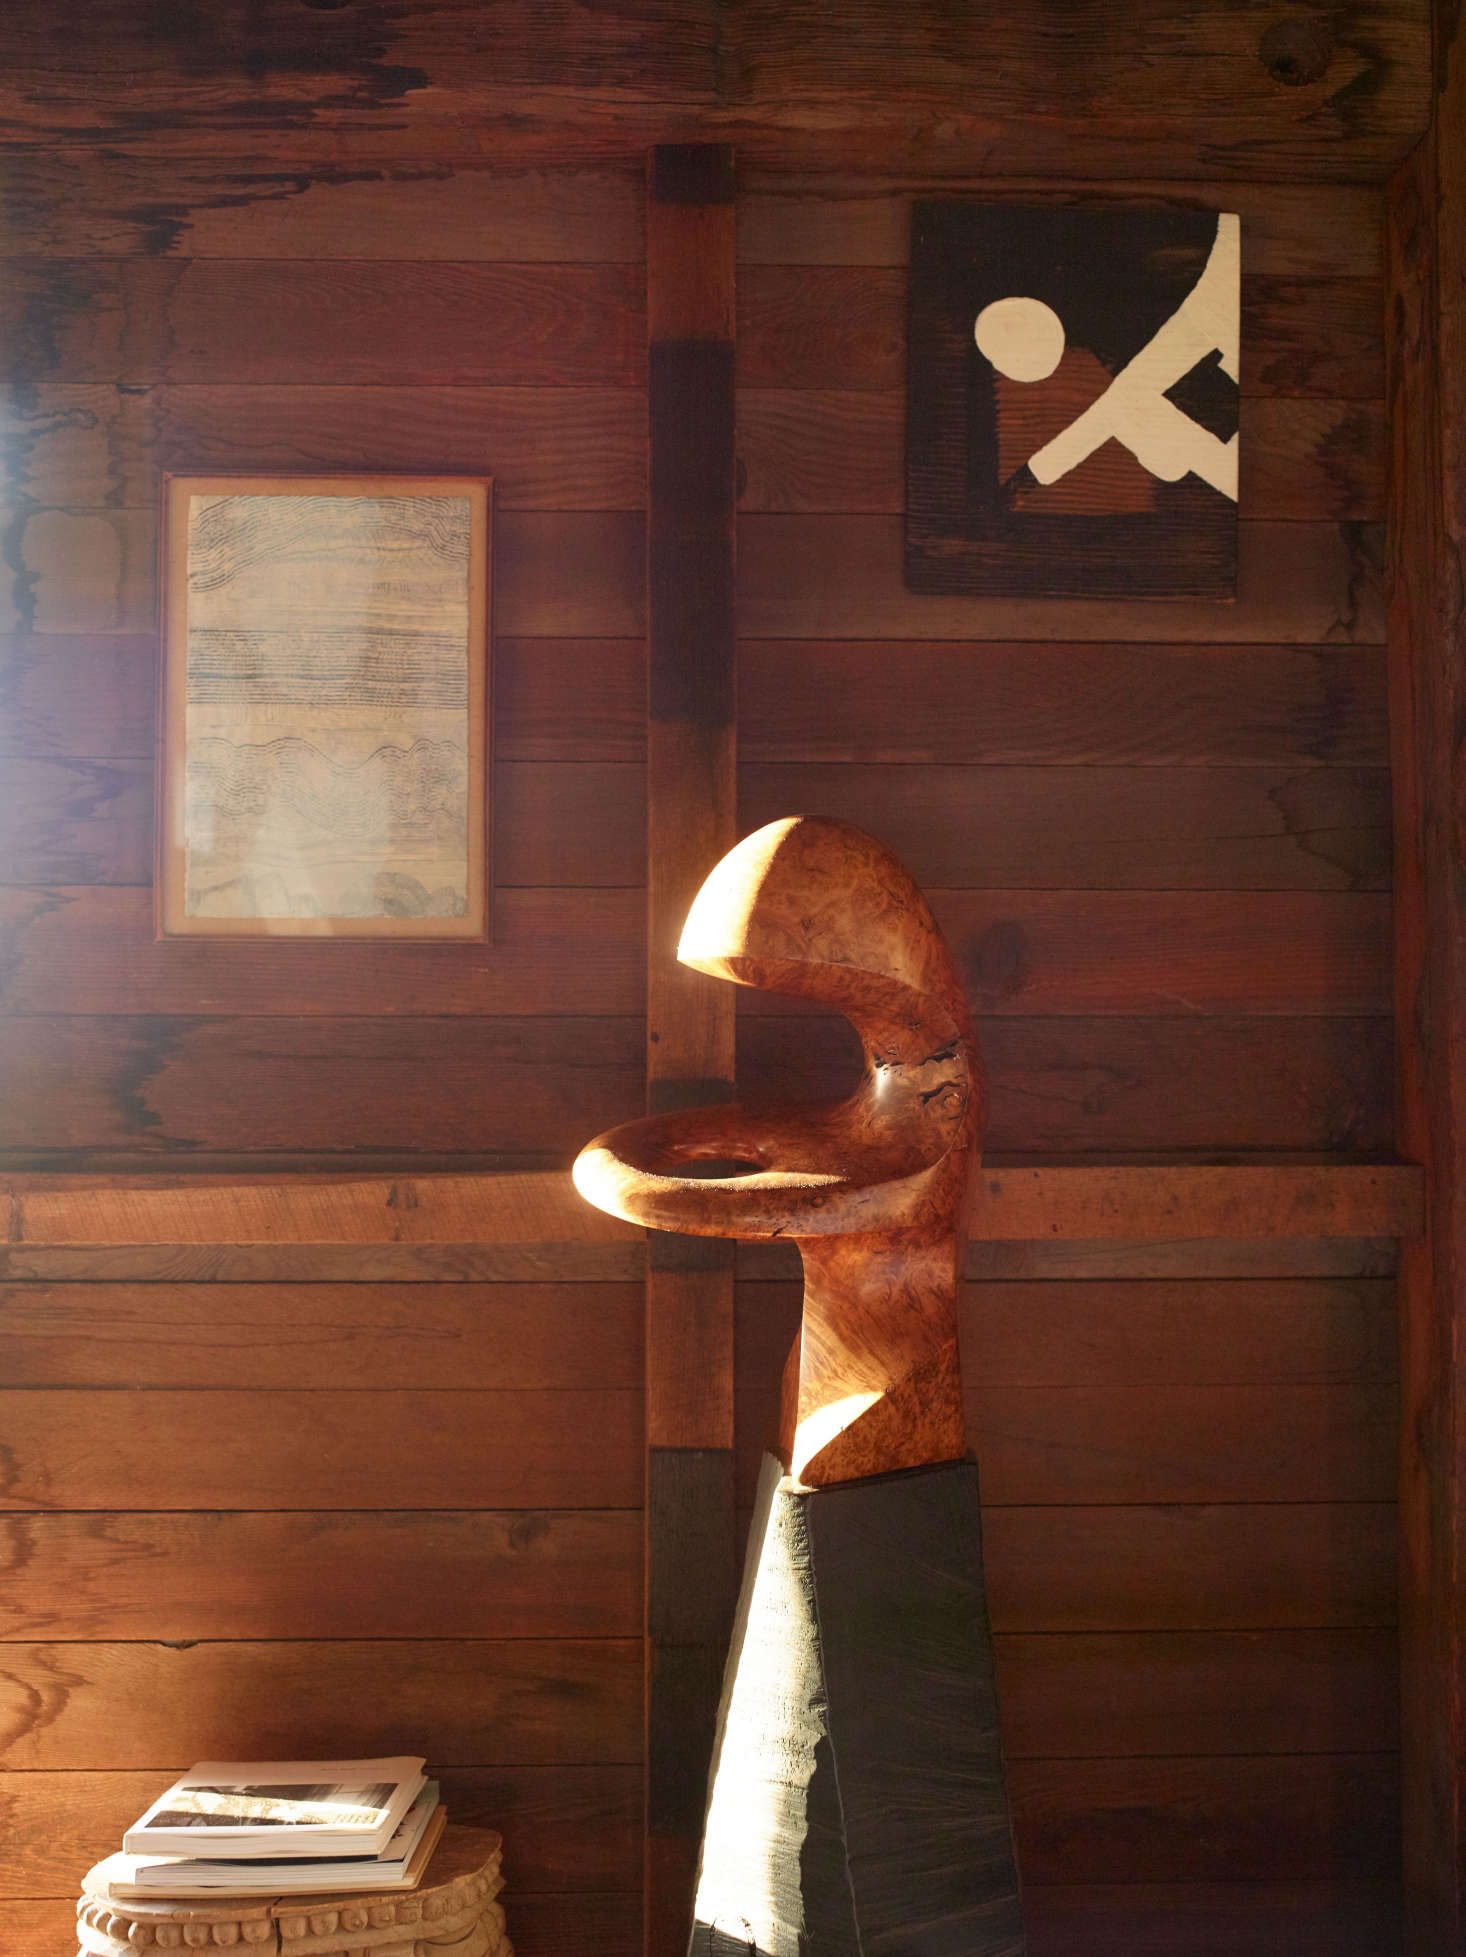 A wooden sculpture by the doorway.